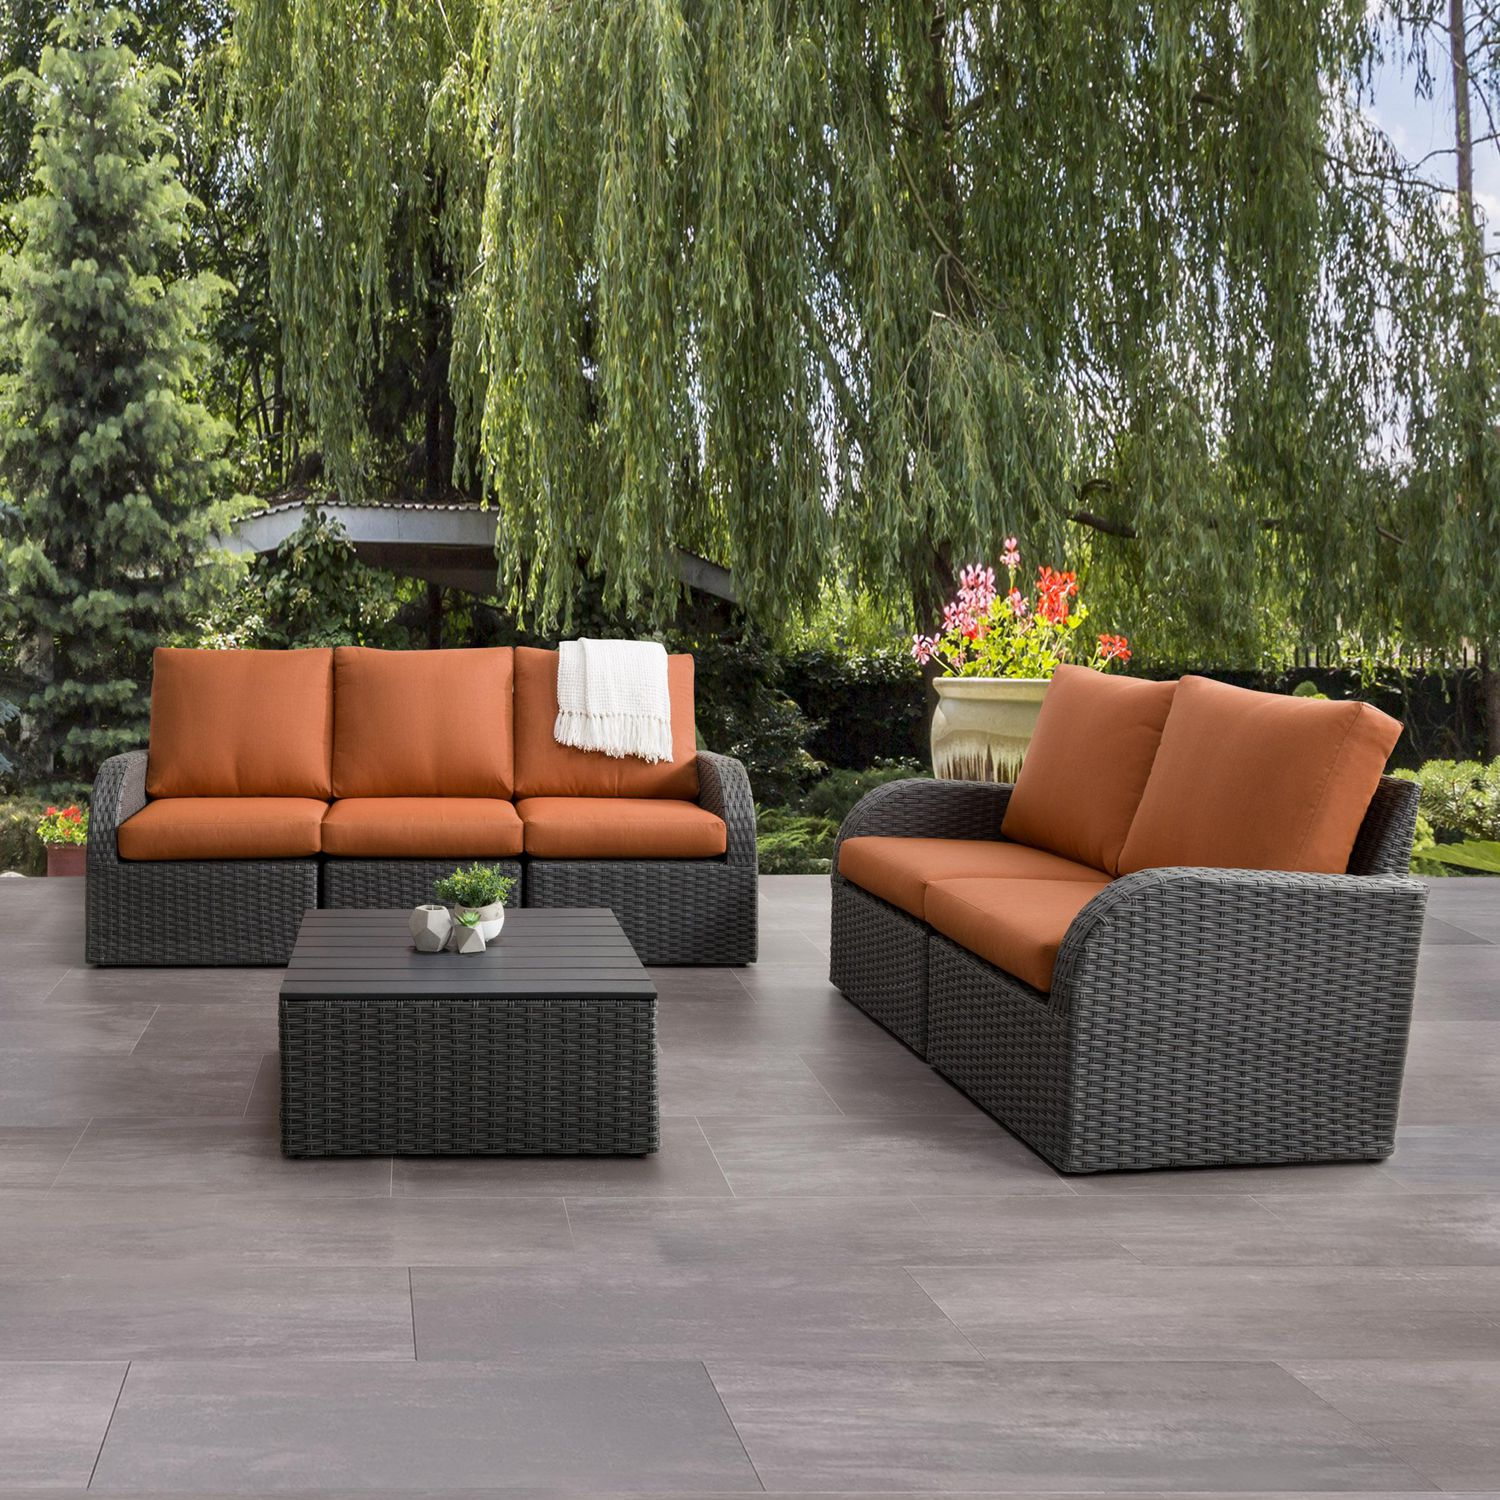 Sofa Brisbane Corliving Brisbane 6pc Weather Resistant Sofa And Loveseat With Square Coffee Table Charcoal Grey